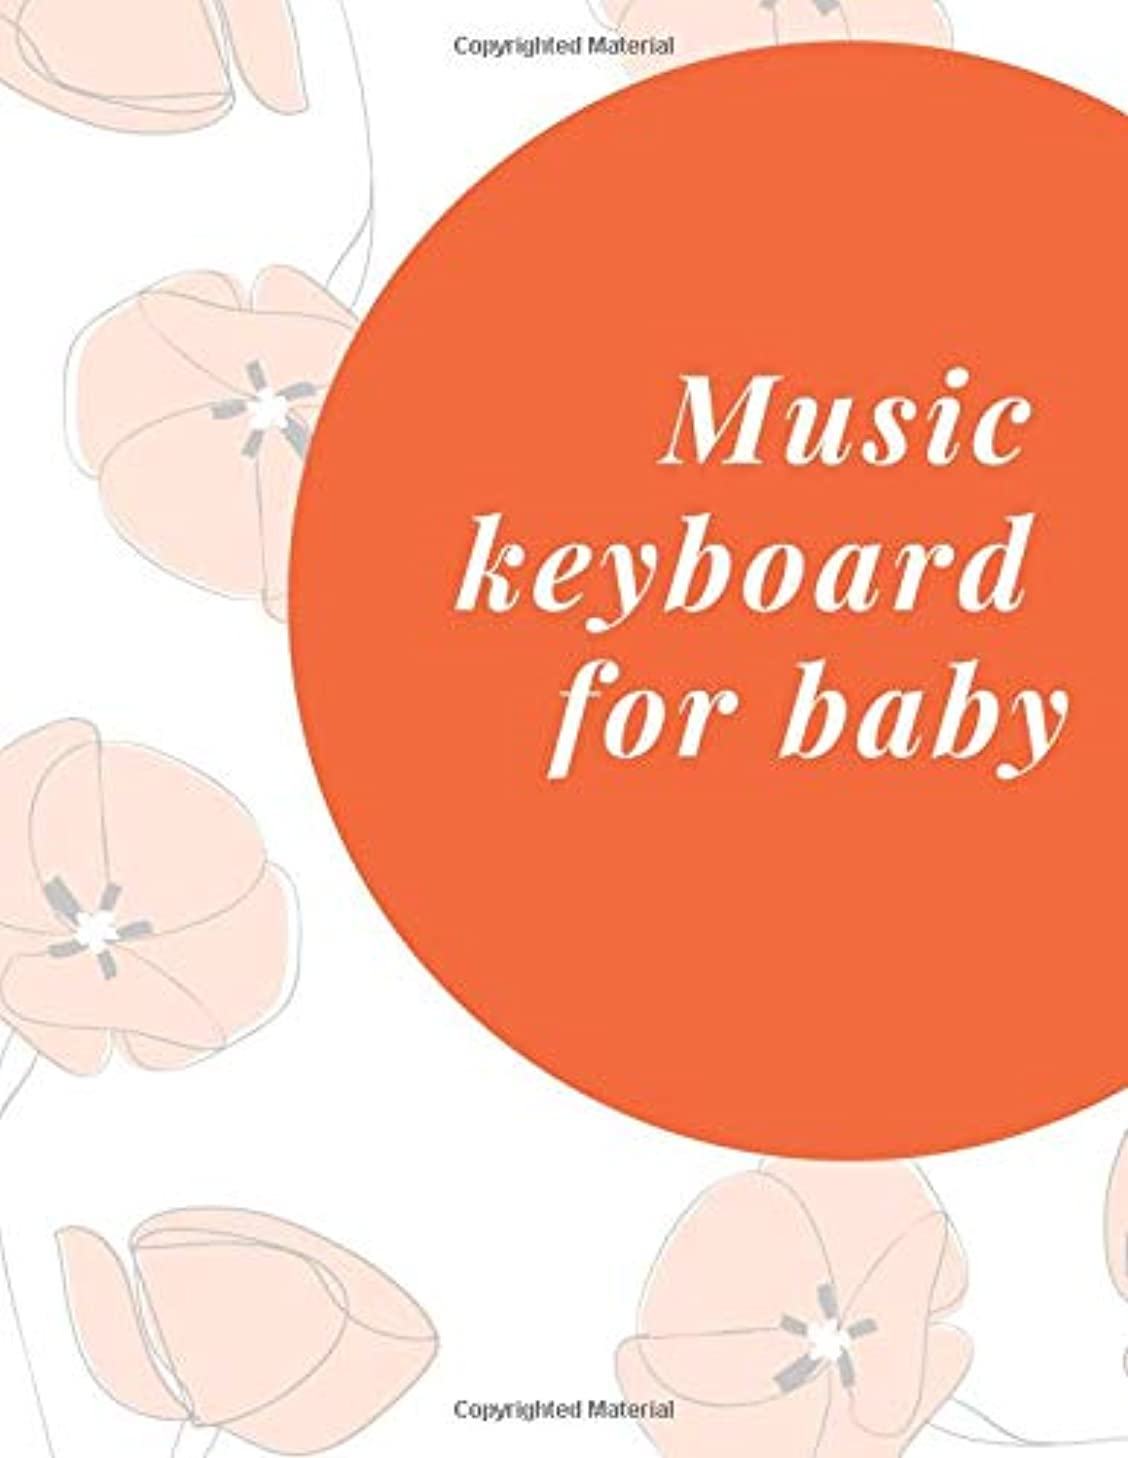 music keyboard for baby: Short Blank Sheet Music Composition and Notation Notebook /Staff Paper/Music Composing / ... notes book/music composition book (Size 8.5